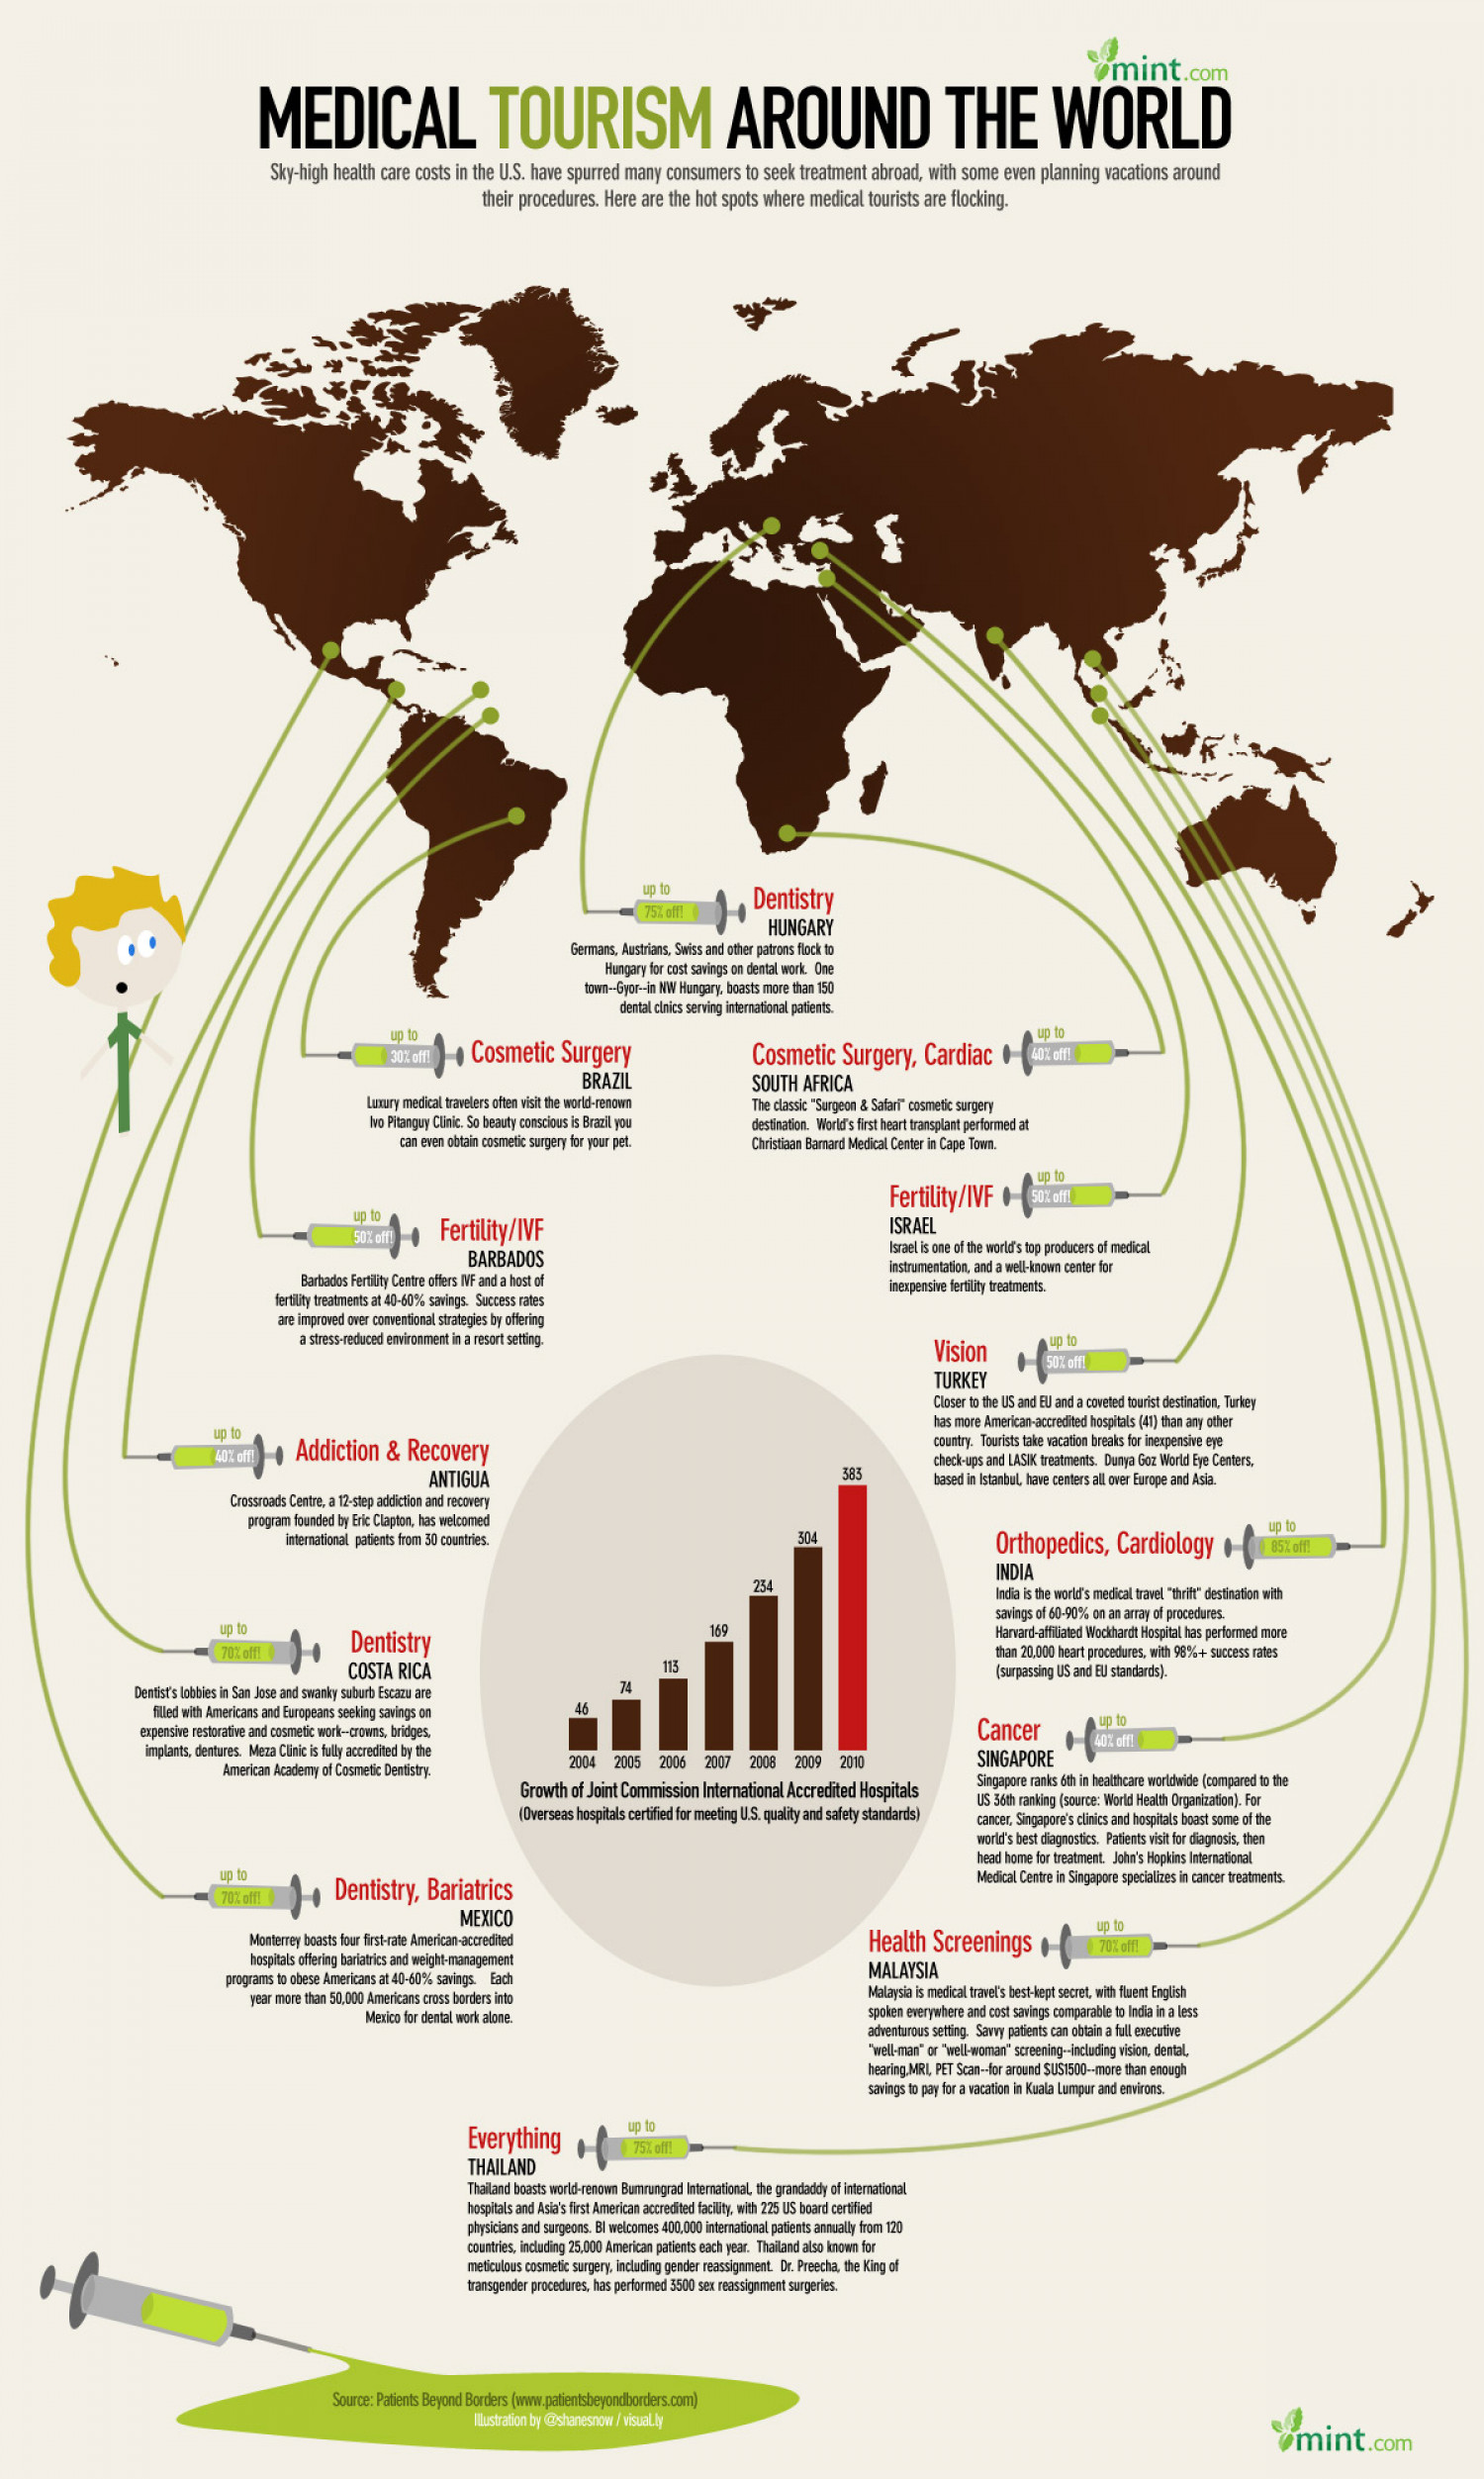 Medical Tourism Around The World Infographic